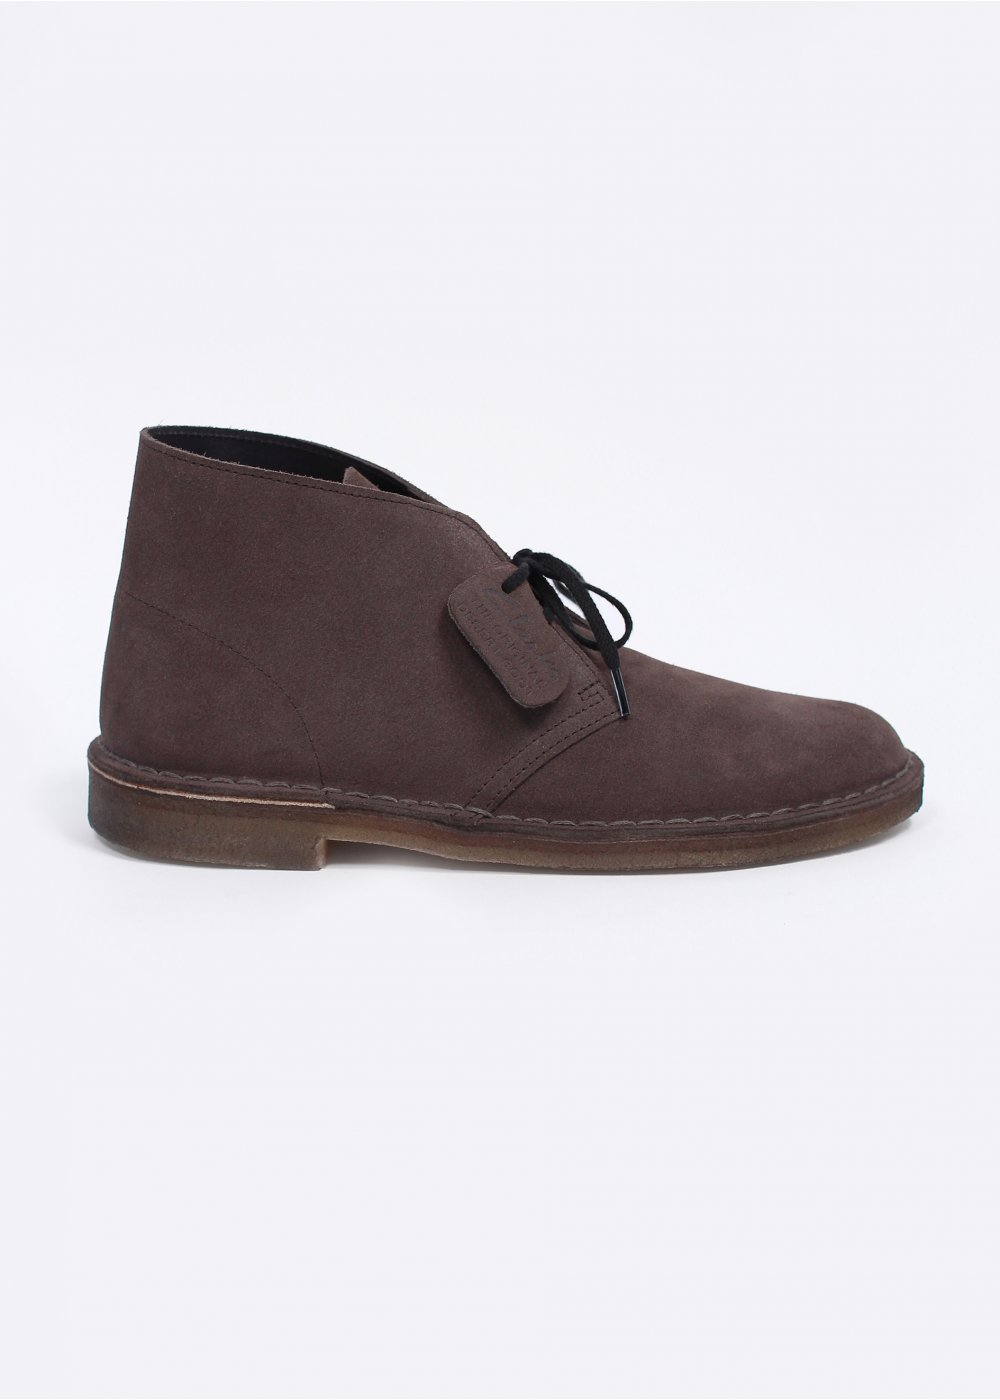 clarks originals desert boot suede grey